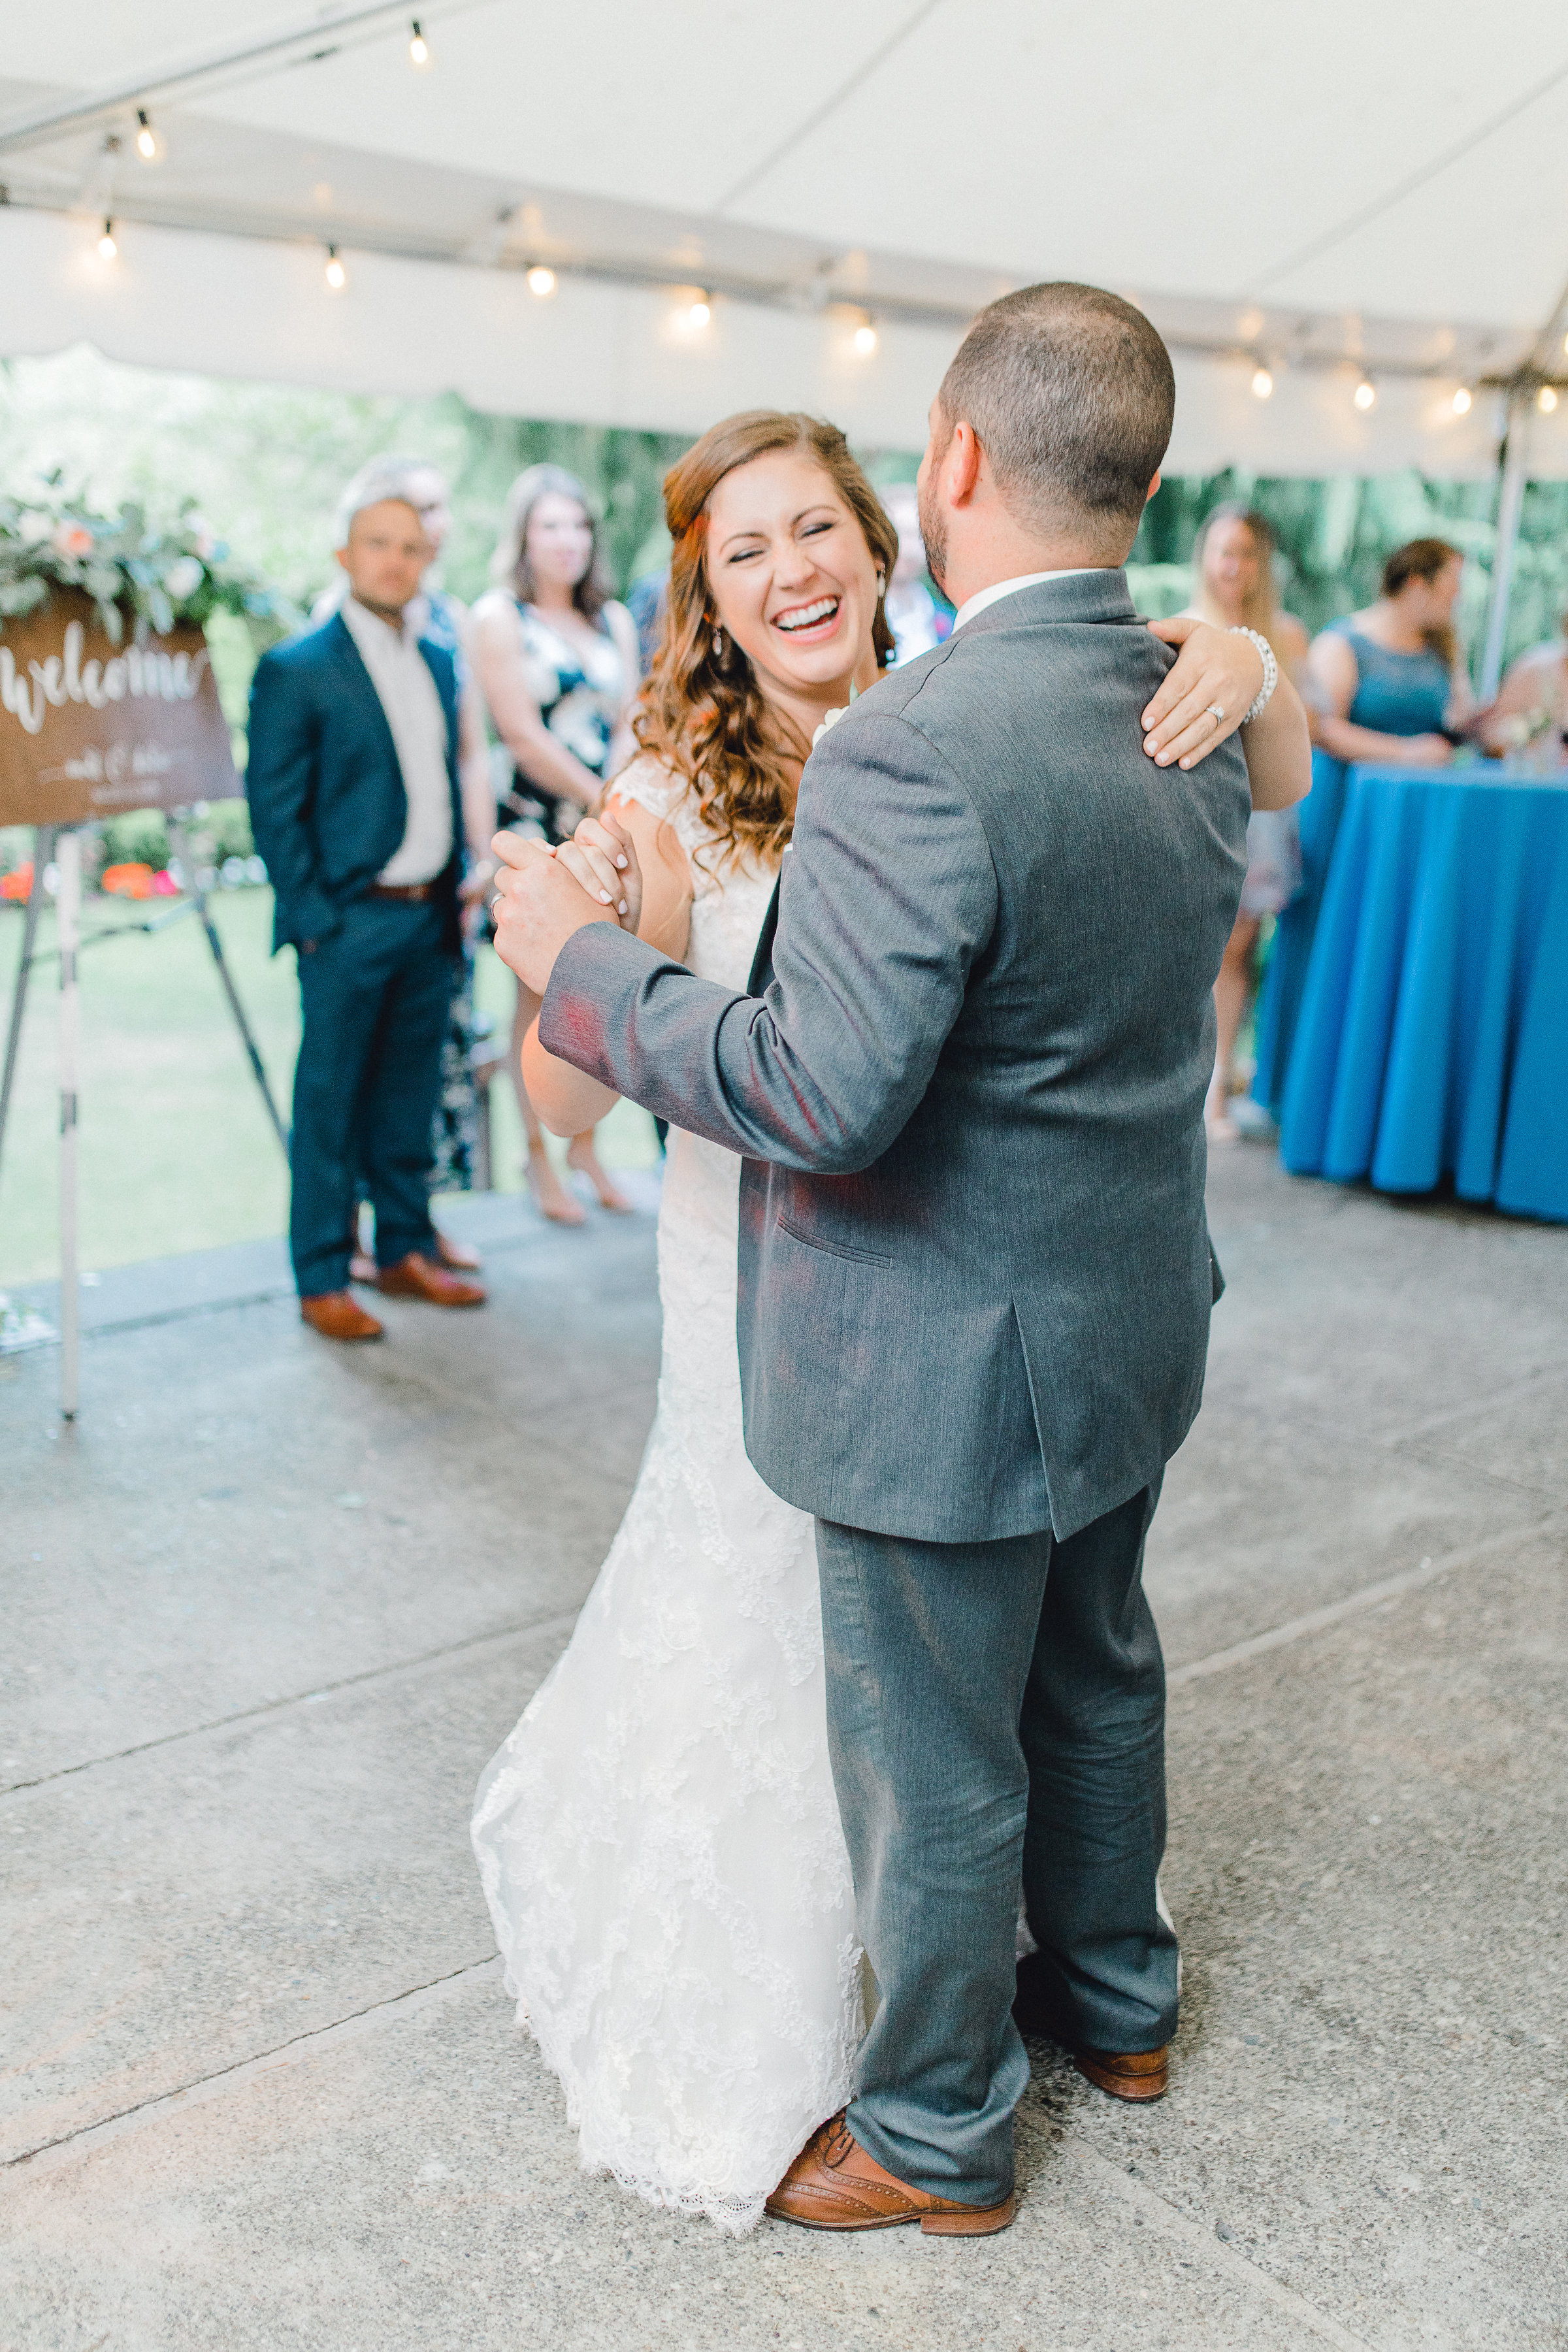 Seattle wedding, Washington wedding, bride and groom, PNW wedding, wedding inspiration, wedding flowers, Seattle bride, outdoor wedding, garden wedding, wedding reception, first dance, wedding dance